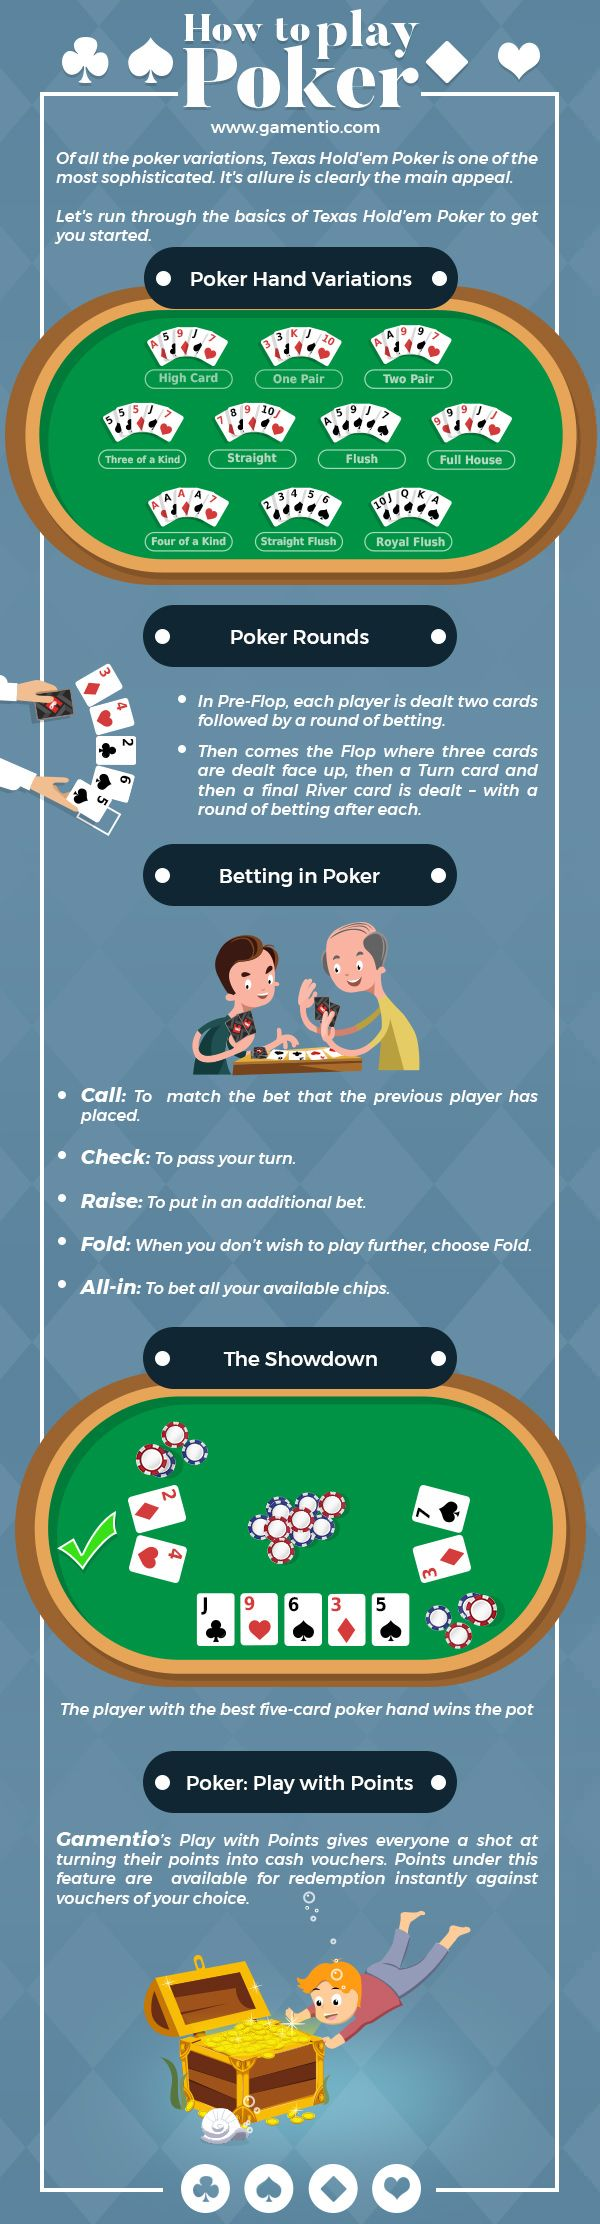 Party poker casino points game